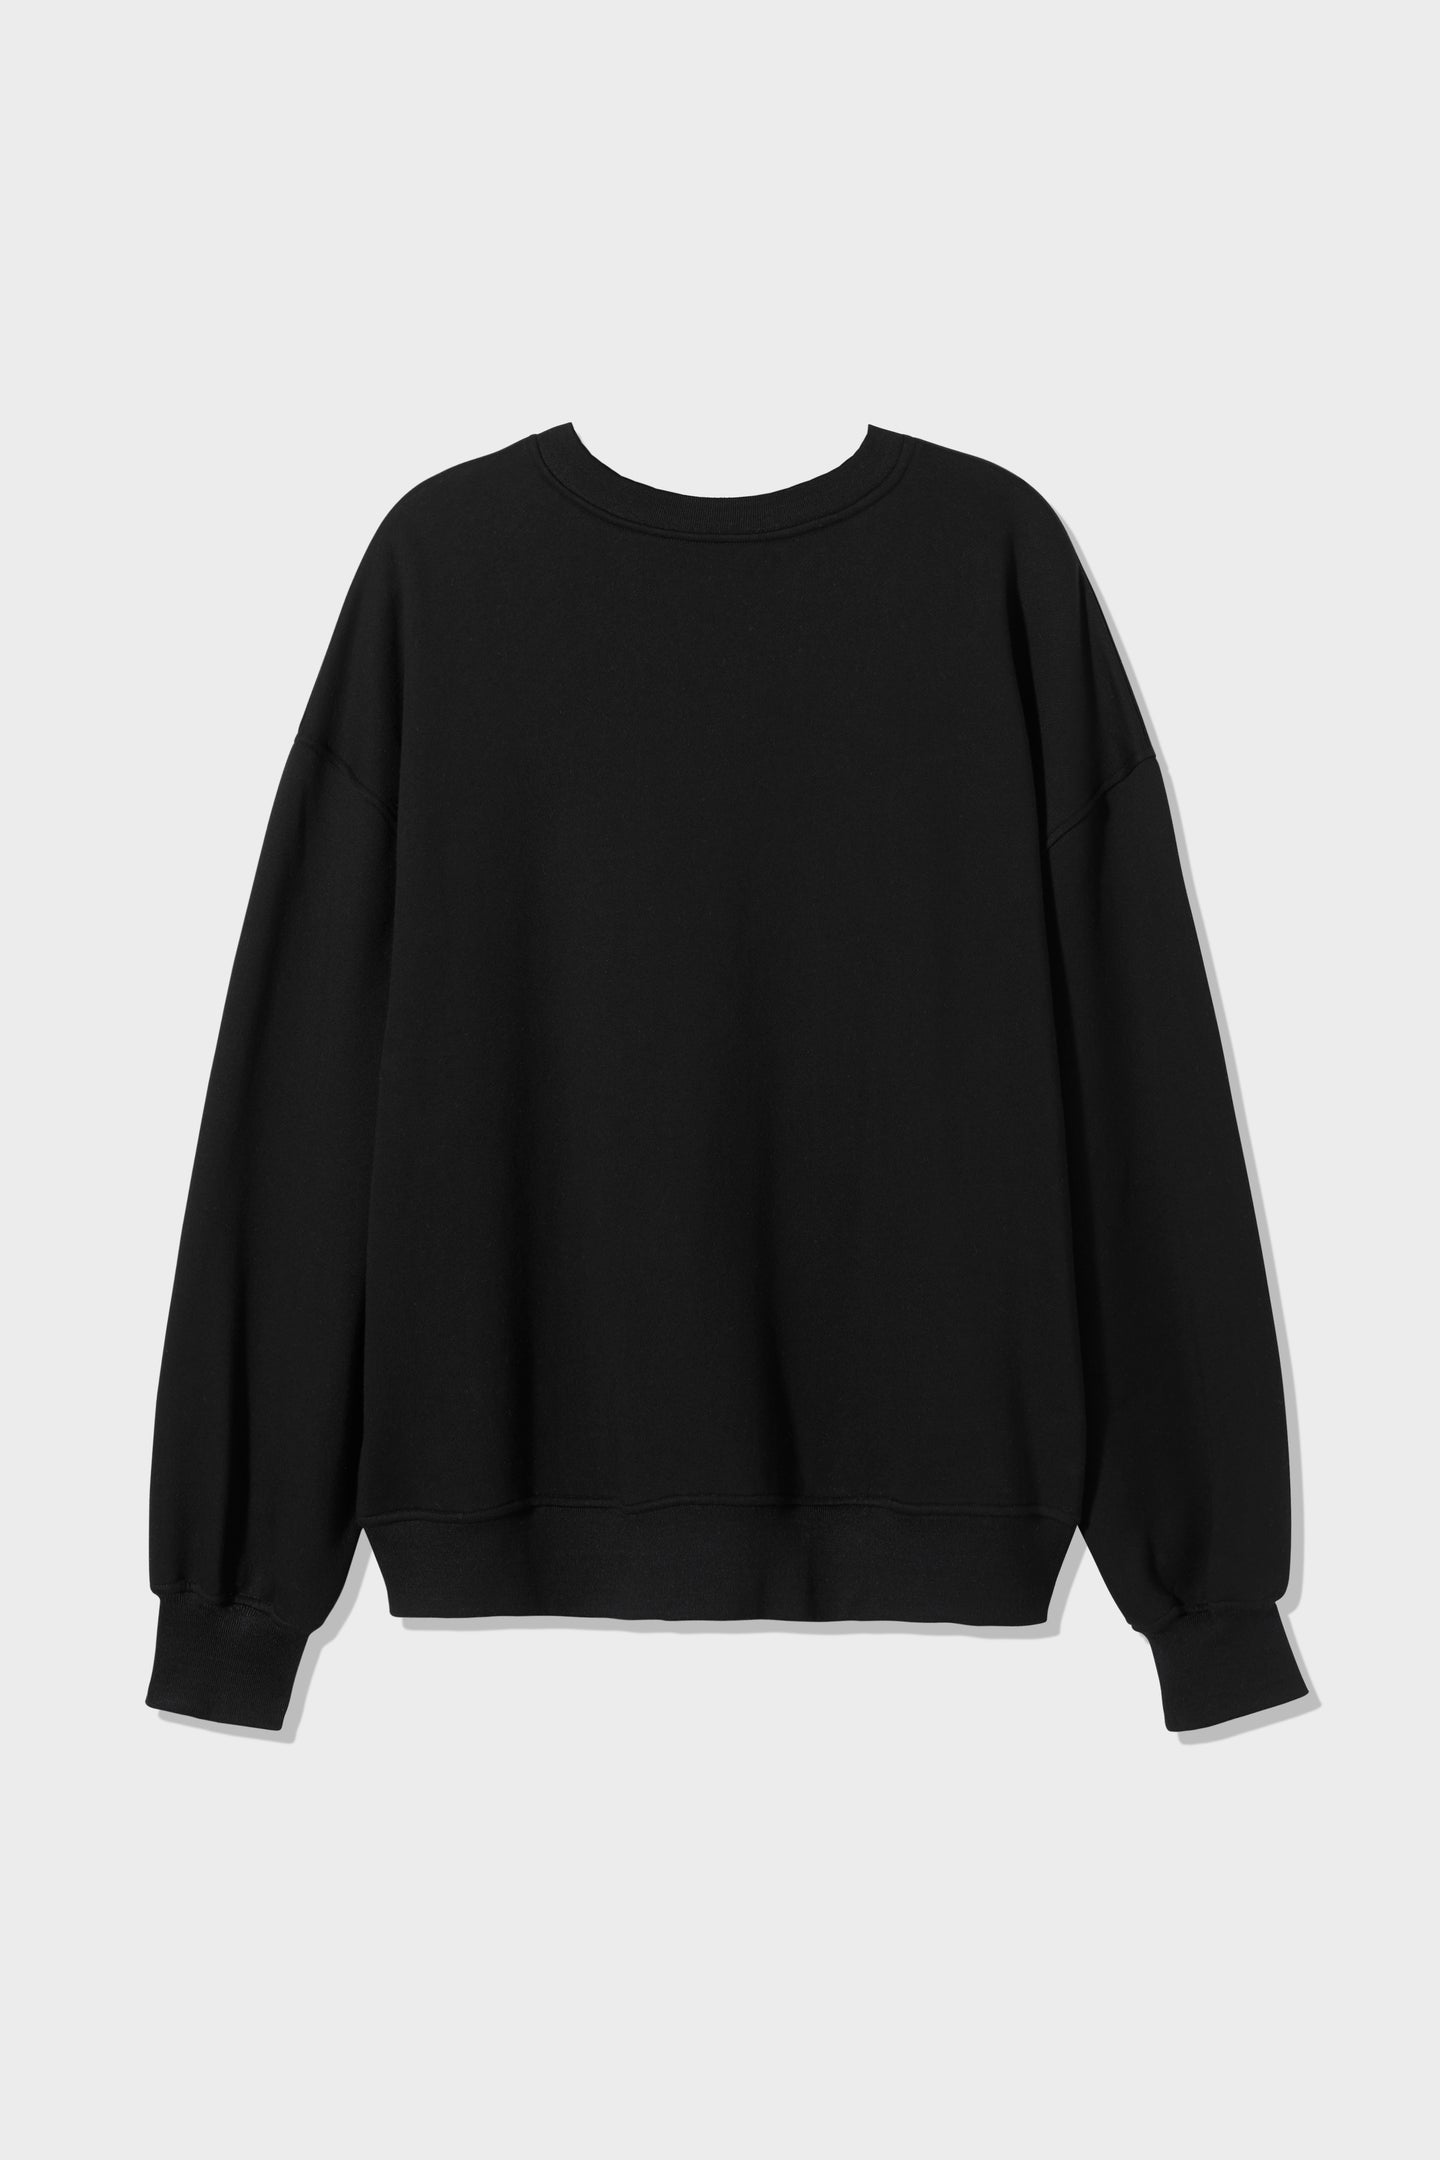 SIR the label CREW NECK SWEATER BLACK